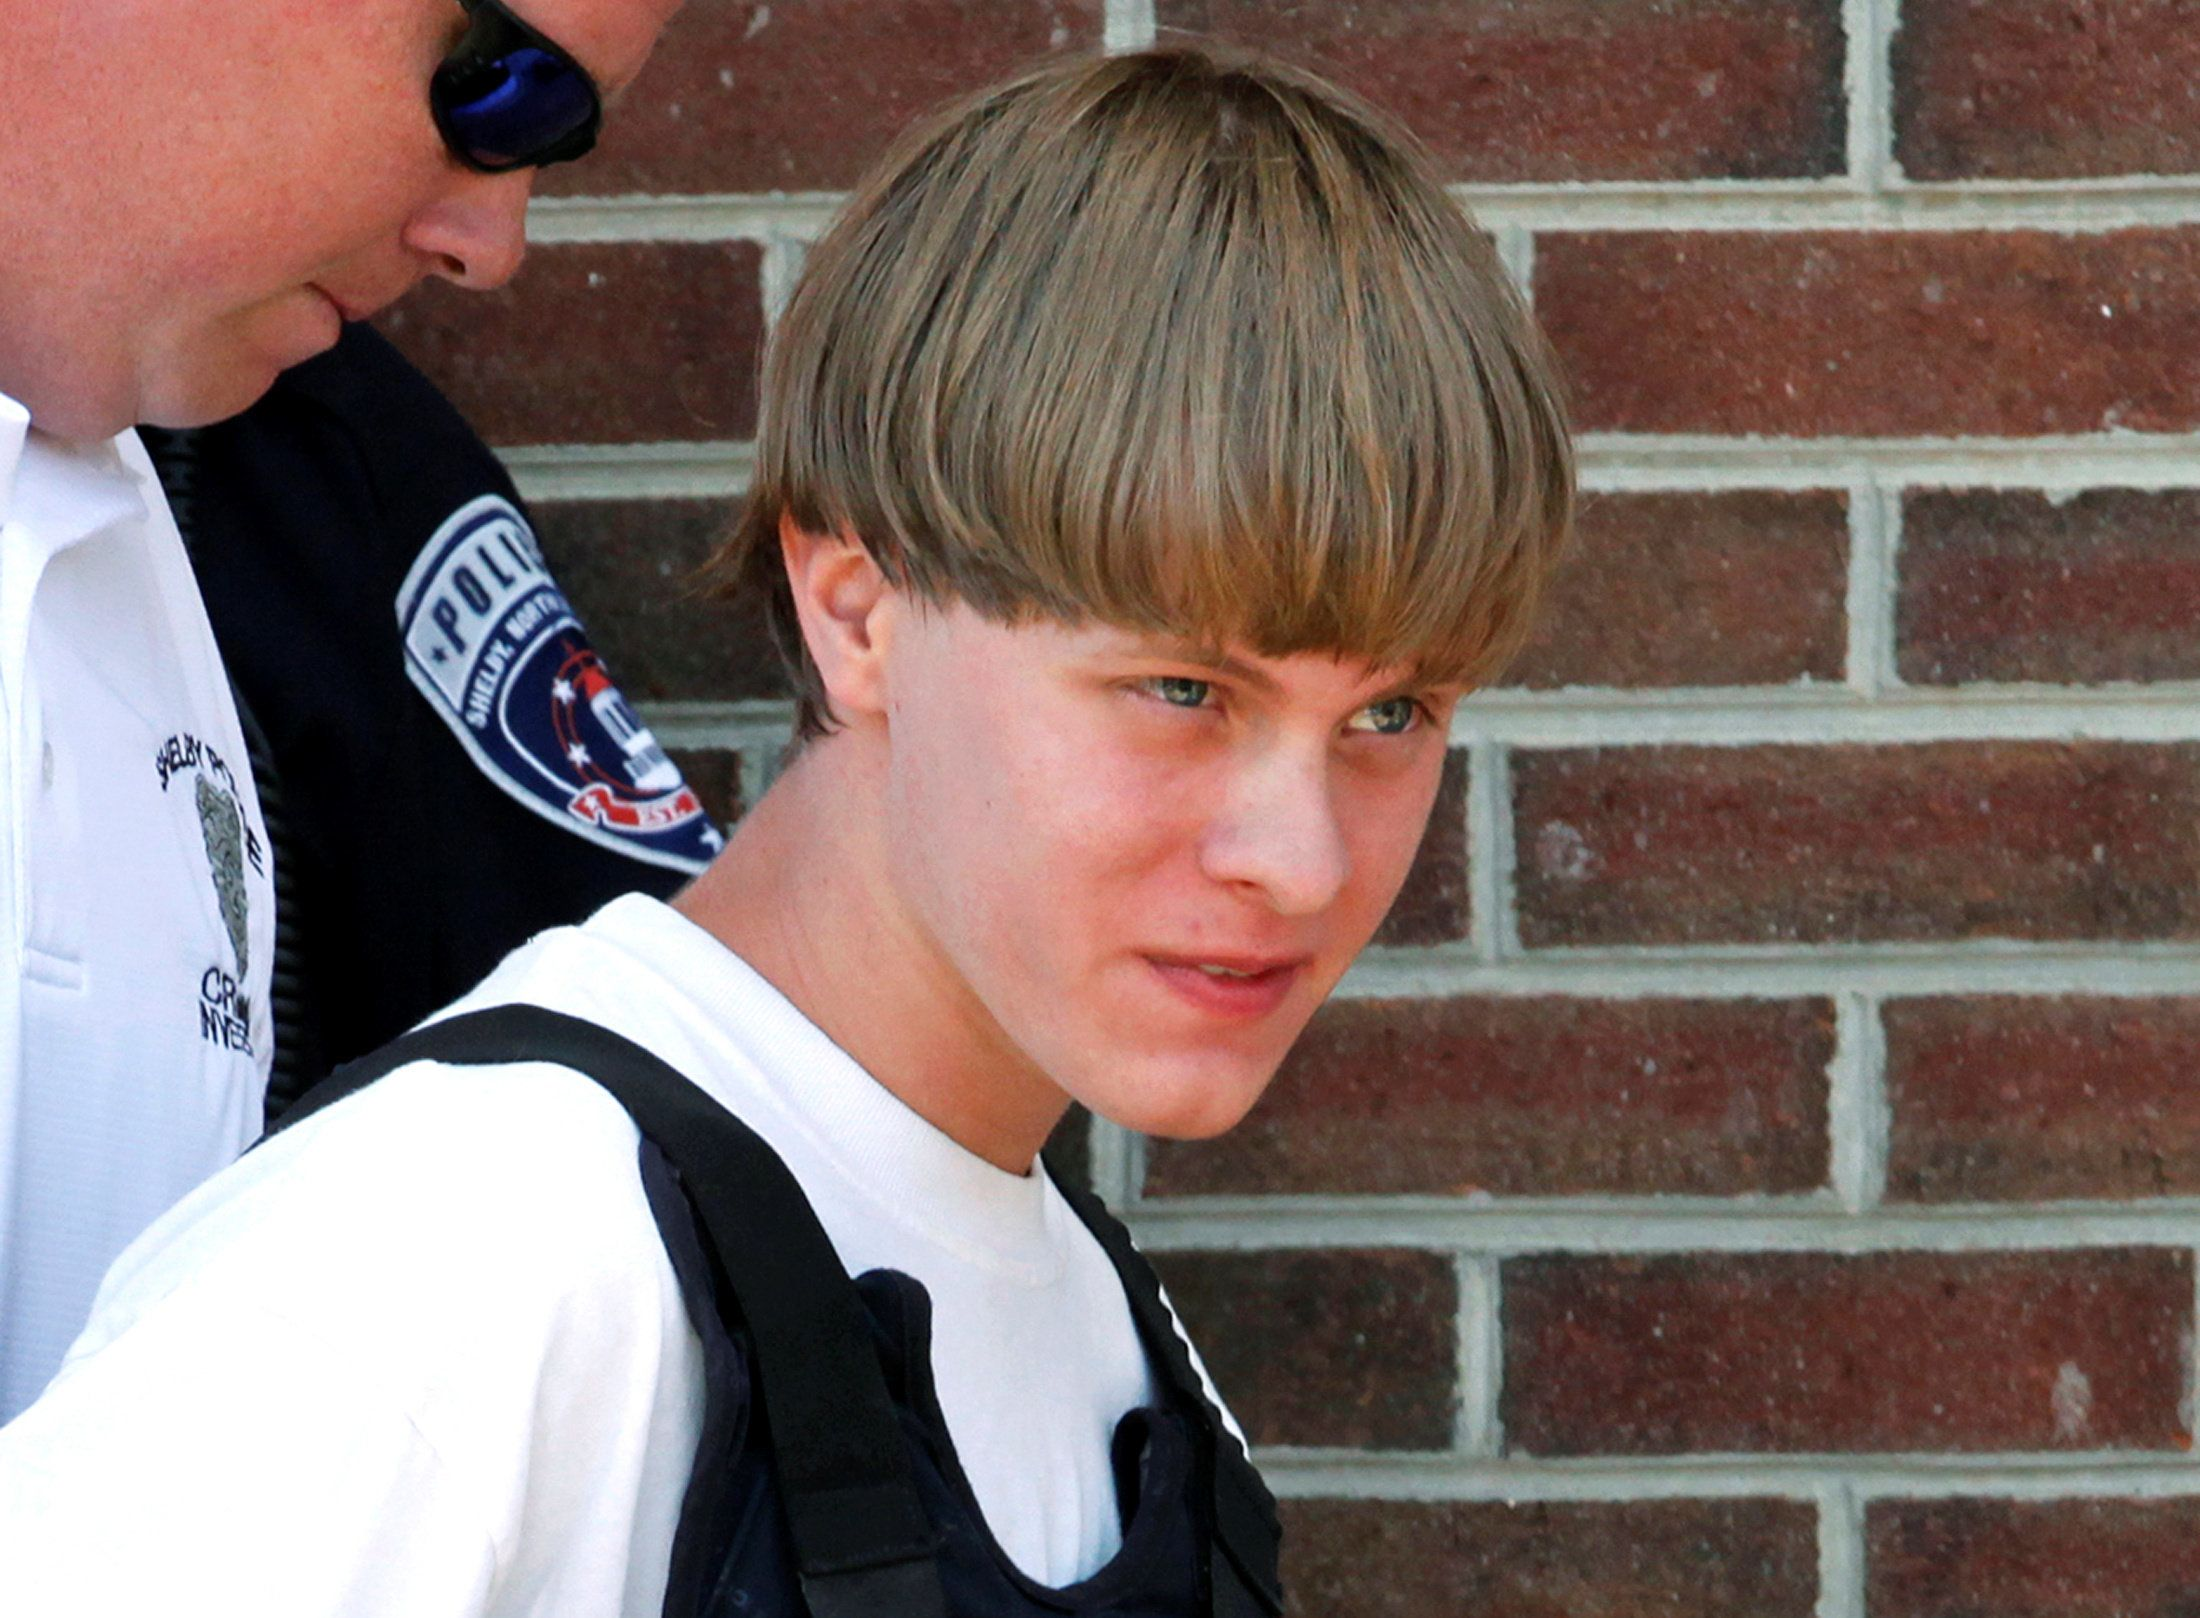 Police lead Dylann Roof into the courthouse in Shelby, North Carolina, where he was arrested the...